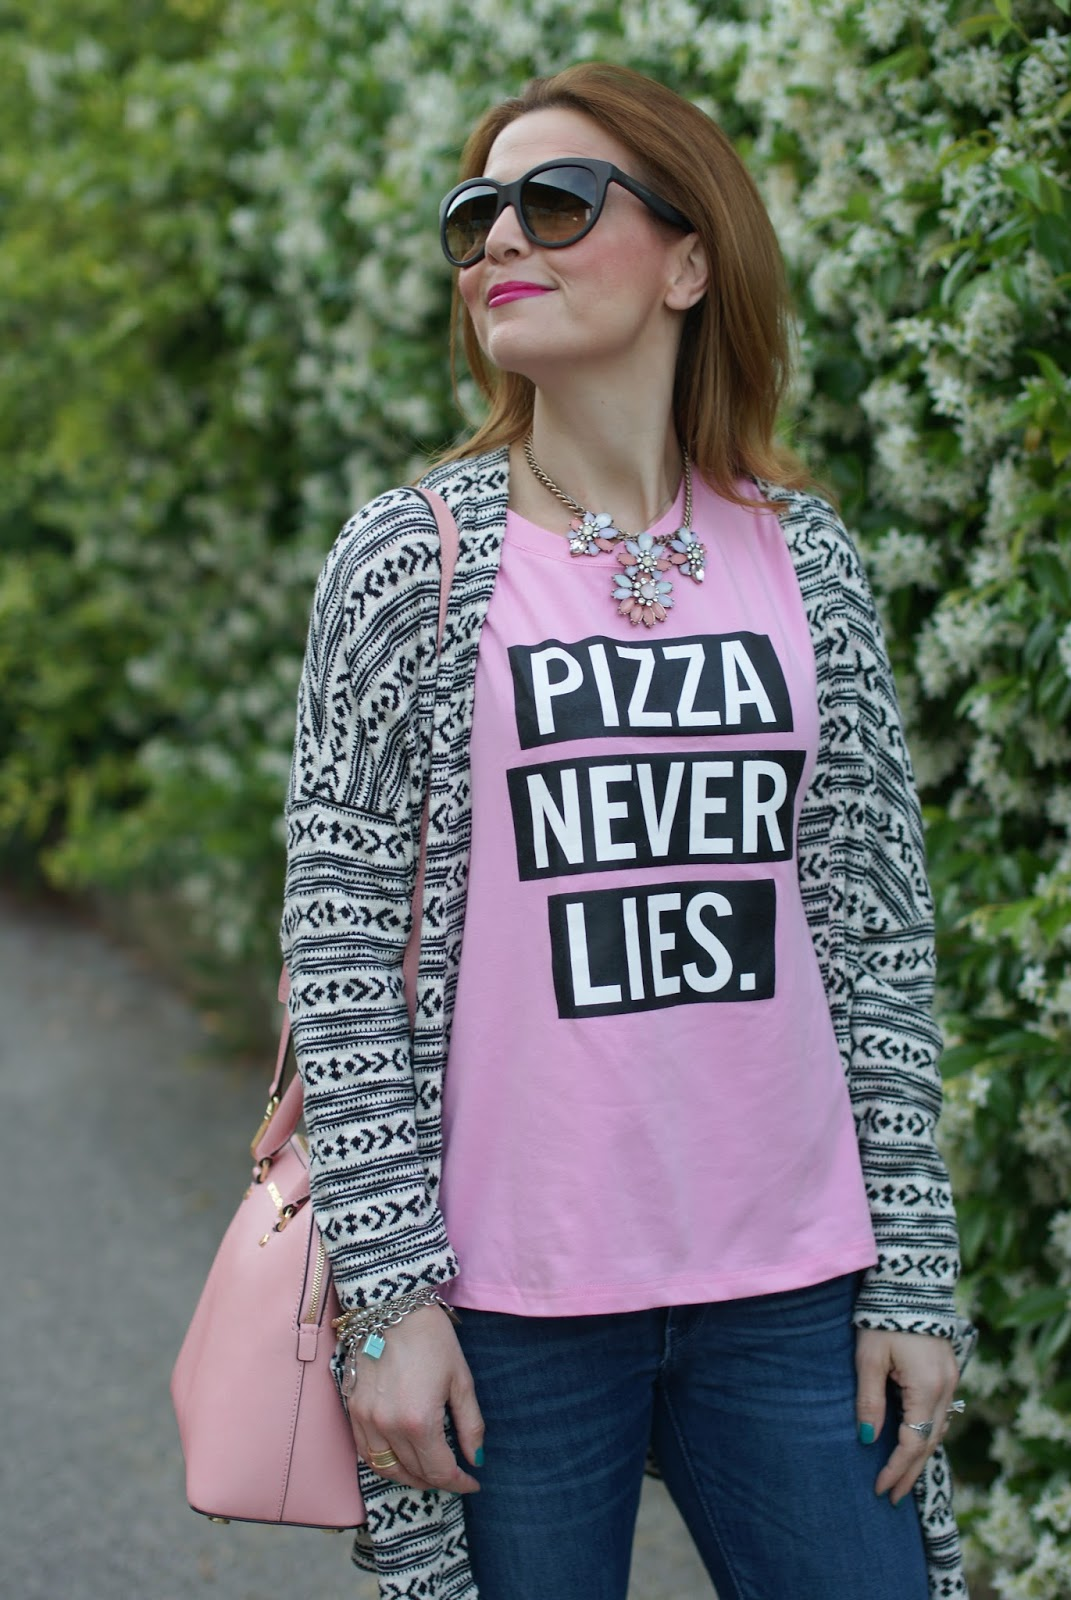 Pizza never lies, Zaful pink t-shirt, Bijou Brigitte necklace, Zaful pizza never lies, casual pink look on Fashion and Cookies fashion blog, fashion blogger style